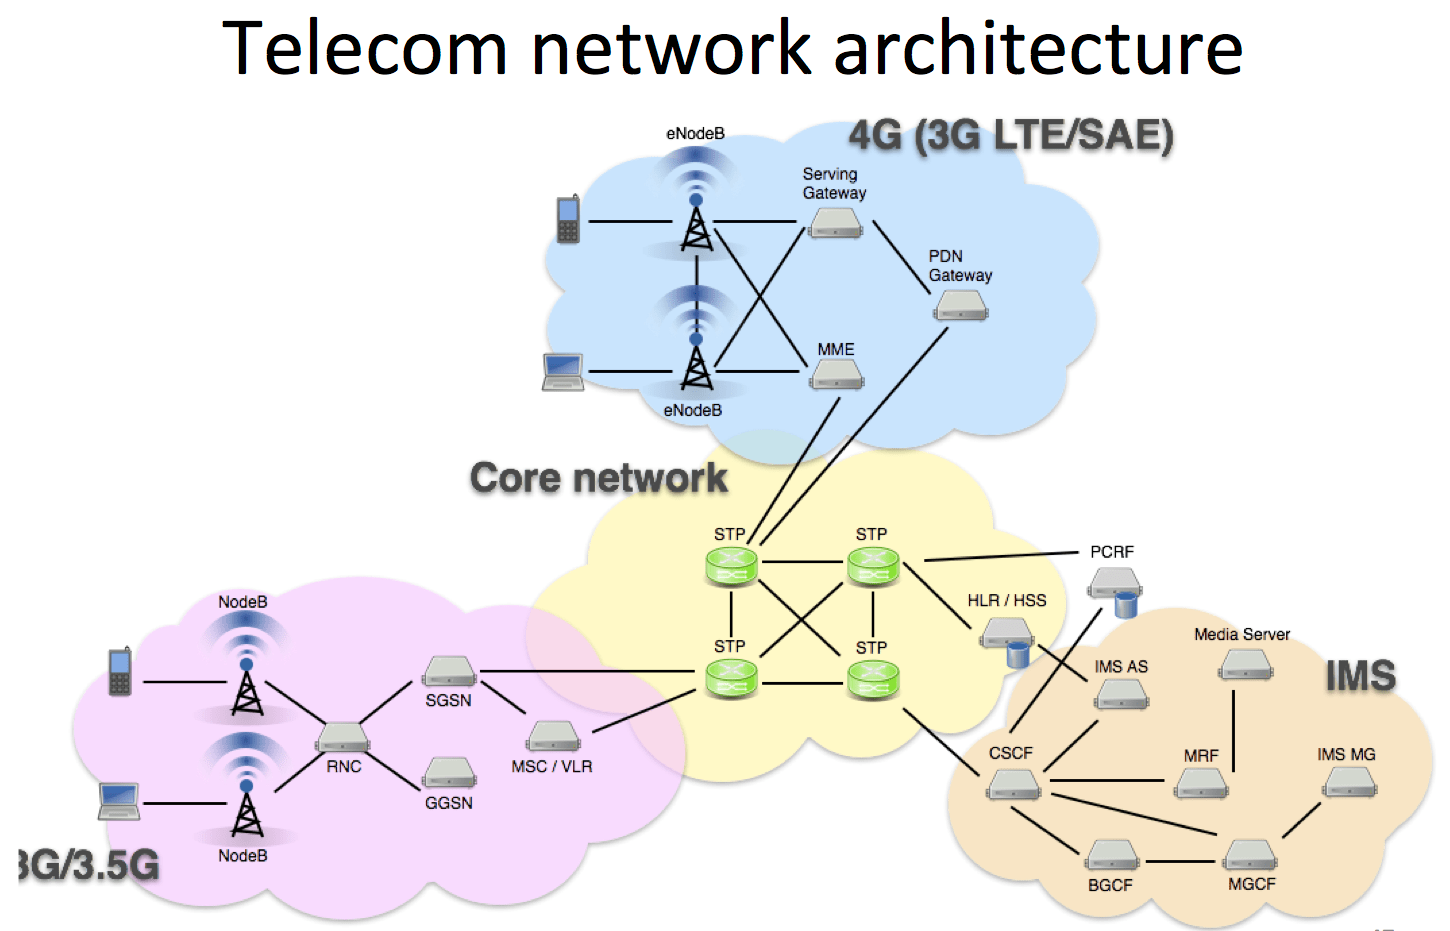 telecom network diagram microsoft wiring carrier central air conditioner p1 labs  rmll lsm 2013 opening up mobile and